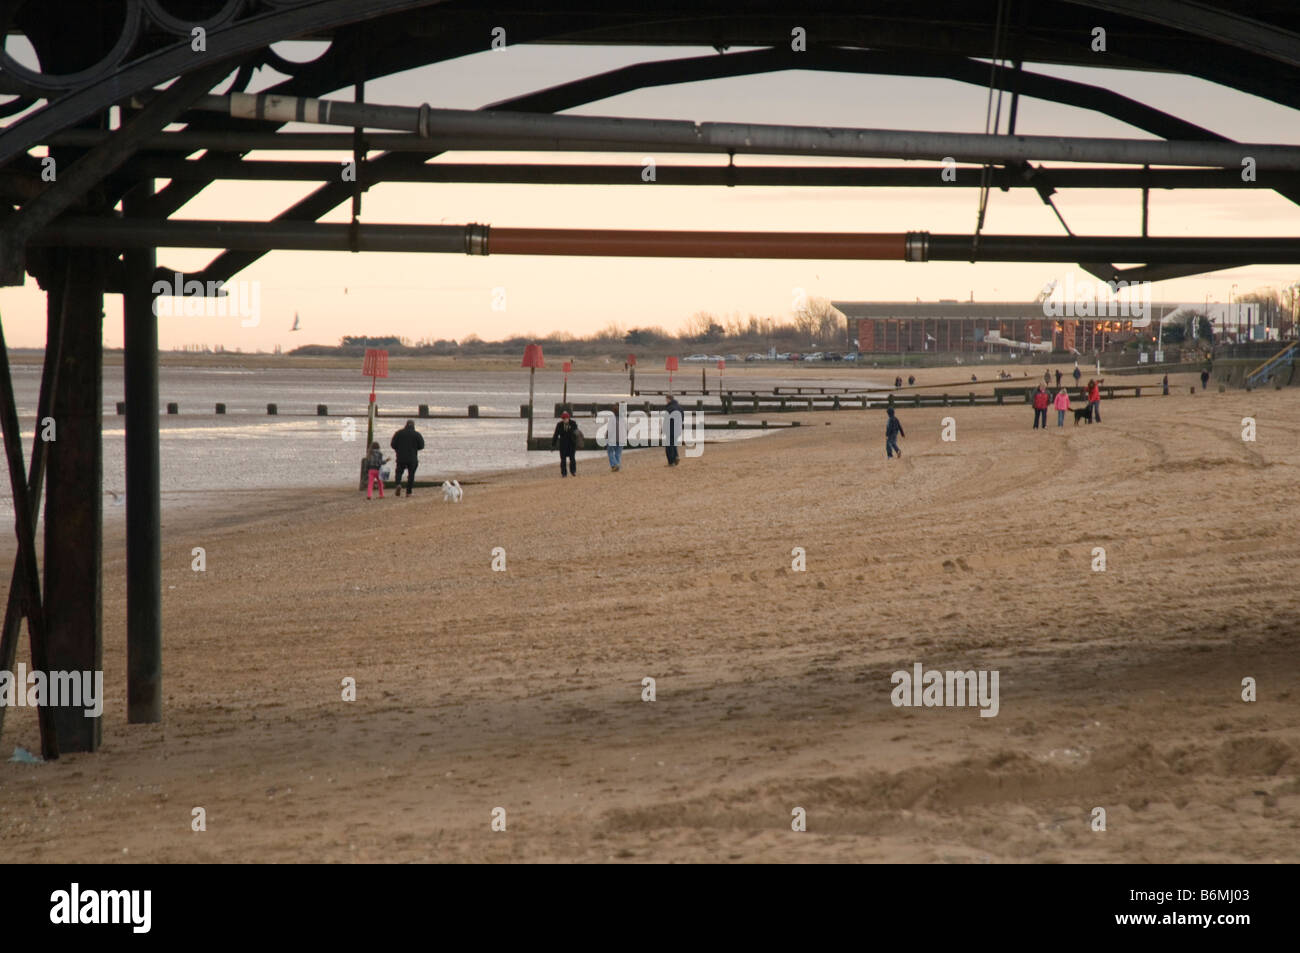 cleethorpes north east Lincolnshire beach seaside town pier cold winter day rundown seaside sea side coast day out Stock Photo